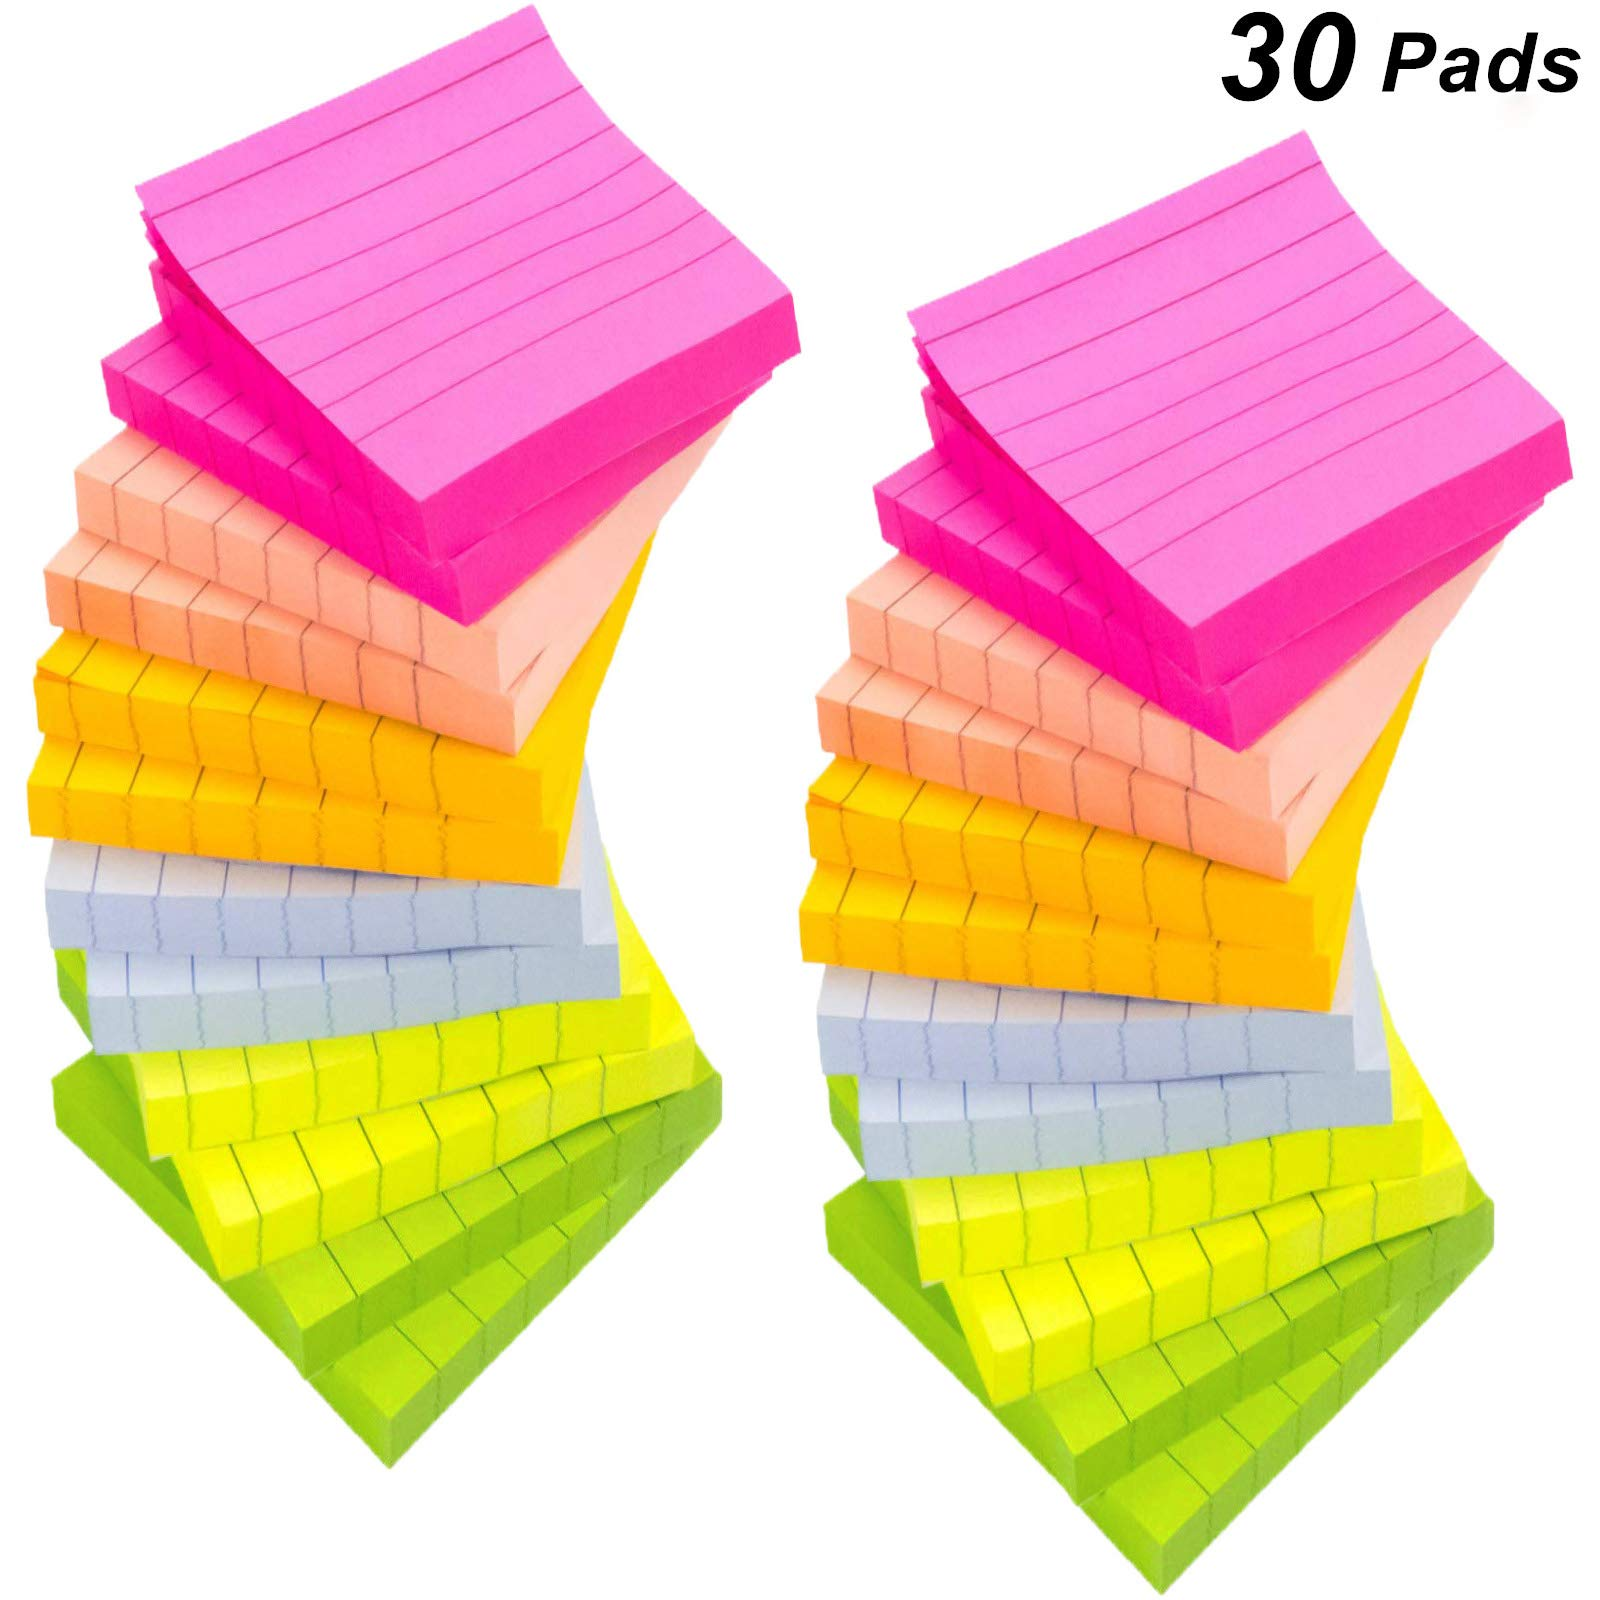 30 Pads/Packs Lined Sticky Notes, 6 Bright Color Self-Stick Notes Pads with Lines, 3 x 3 inch, 80 Sheets/Pad, Neon Paper & Assorted Colors,Easy Post Notes for Study, Works, Office